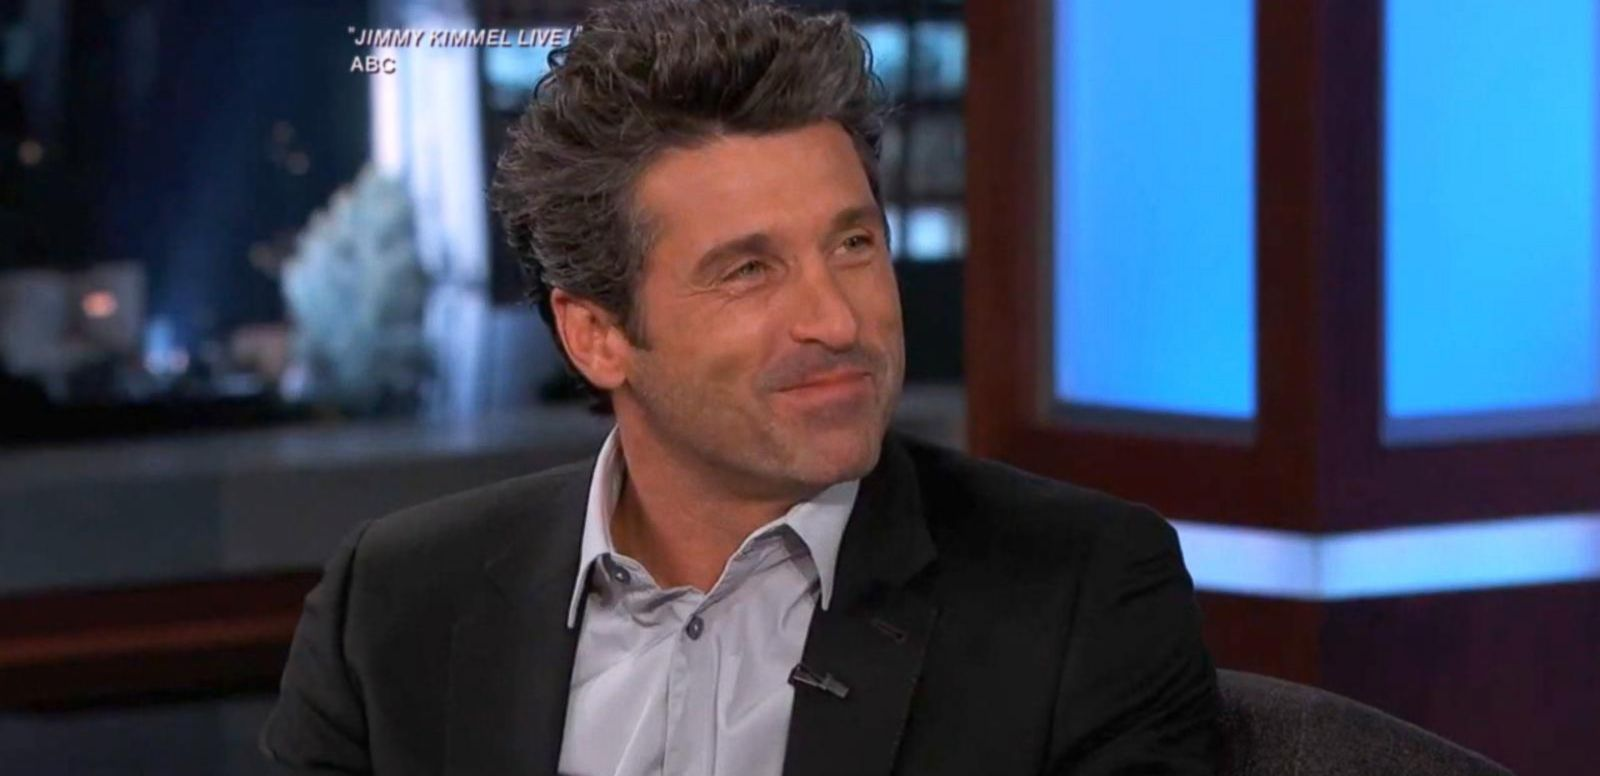 VIDEO: Patrick Dempsey Opens Up About His Surprising Exit From 'Grey's Anatomy'